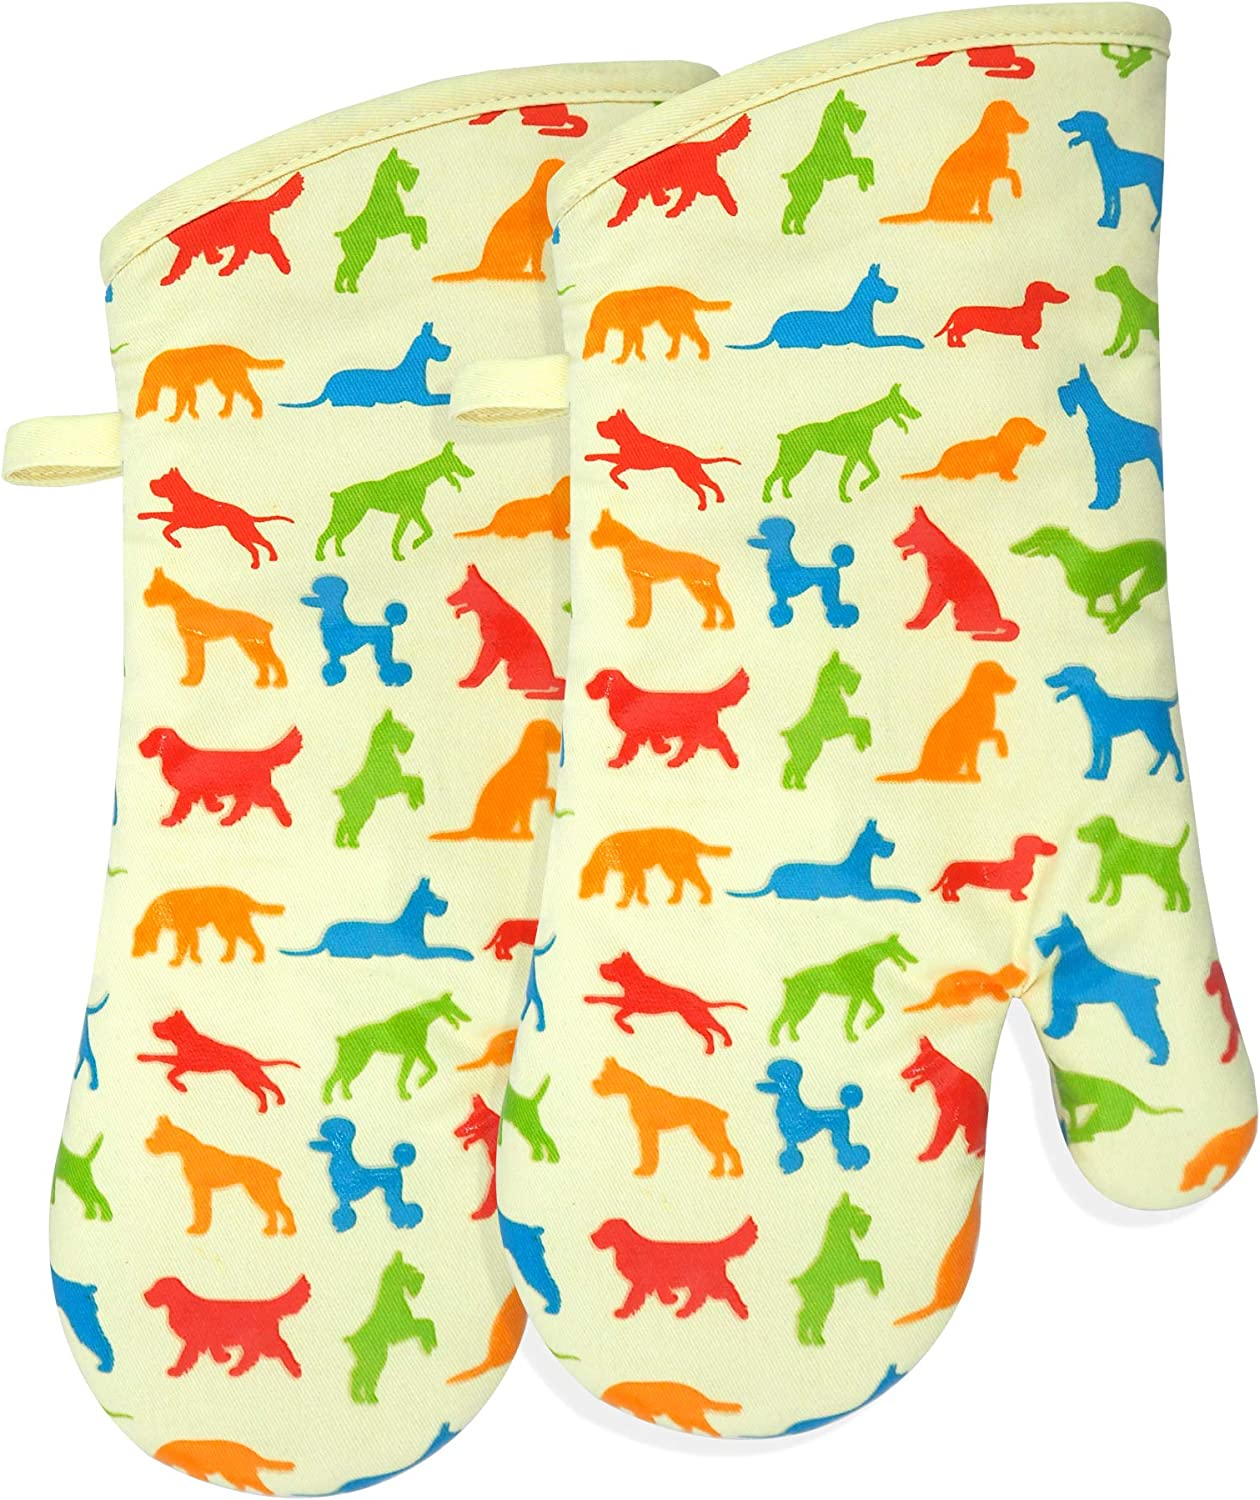 RED LMLDETA Oven Mitts Gloves 1 Pair Heat Resistant 480 ℉ Non Slip Clear Silicone Printed Dog Comfortable Cotton Lining Kitchen Cooking Barbecue BBQ Machine Washable (Dog, Light Yellow Mittens)